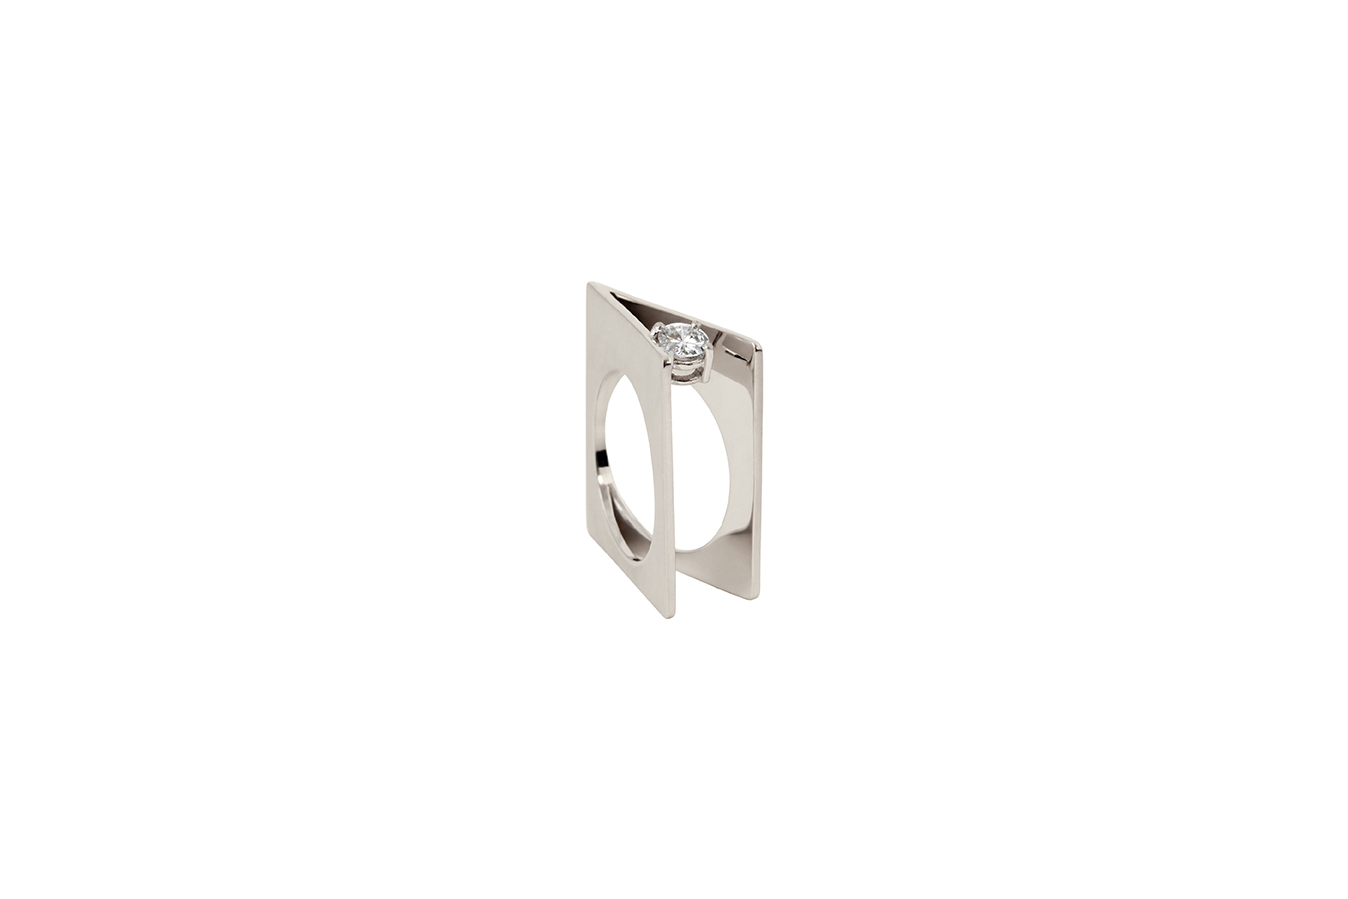 INTRINSIC RING WHITE GOLD 18K 0.25 CT DIAMOND